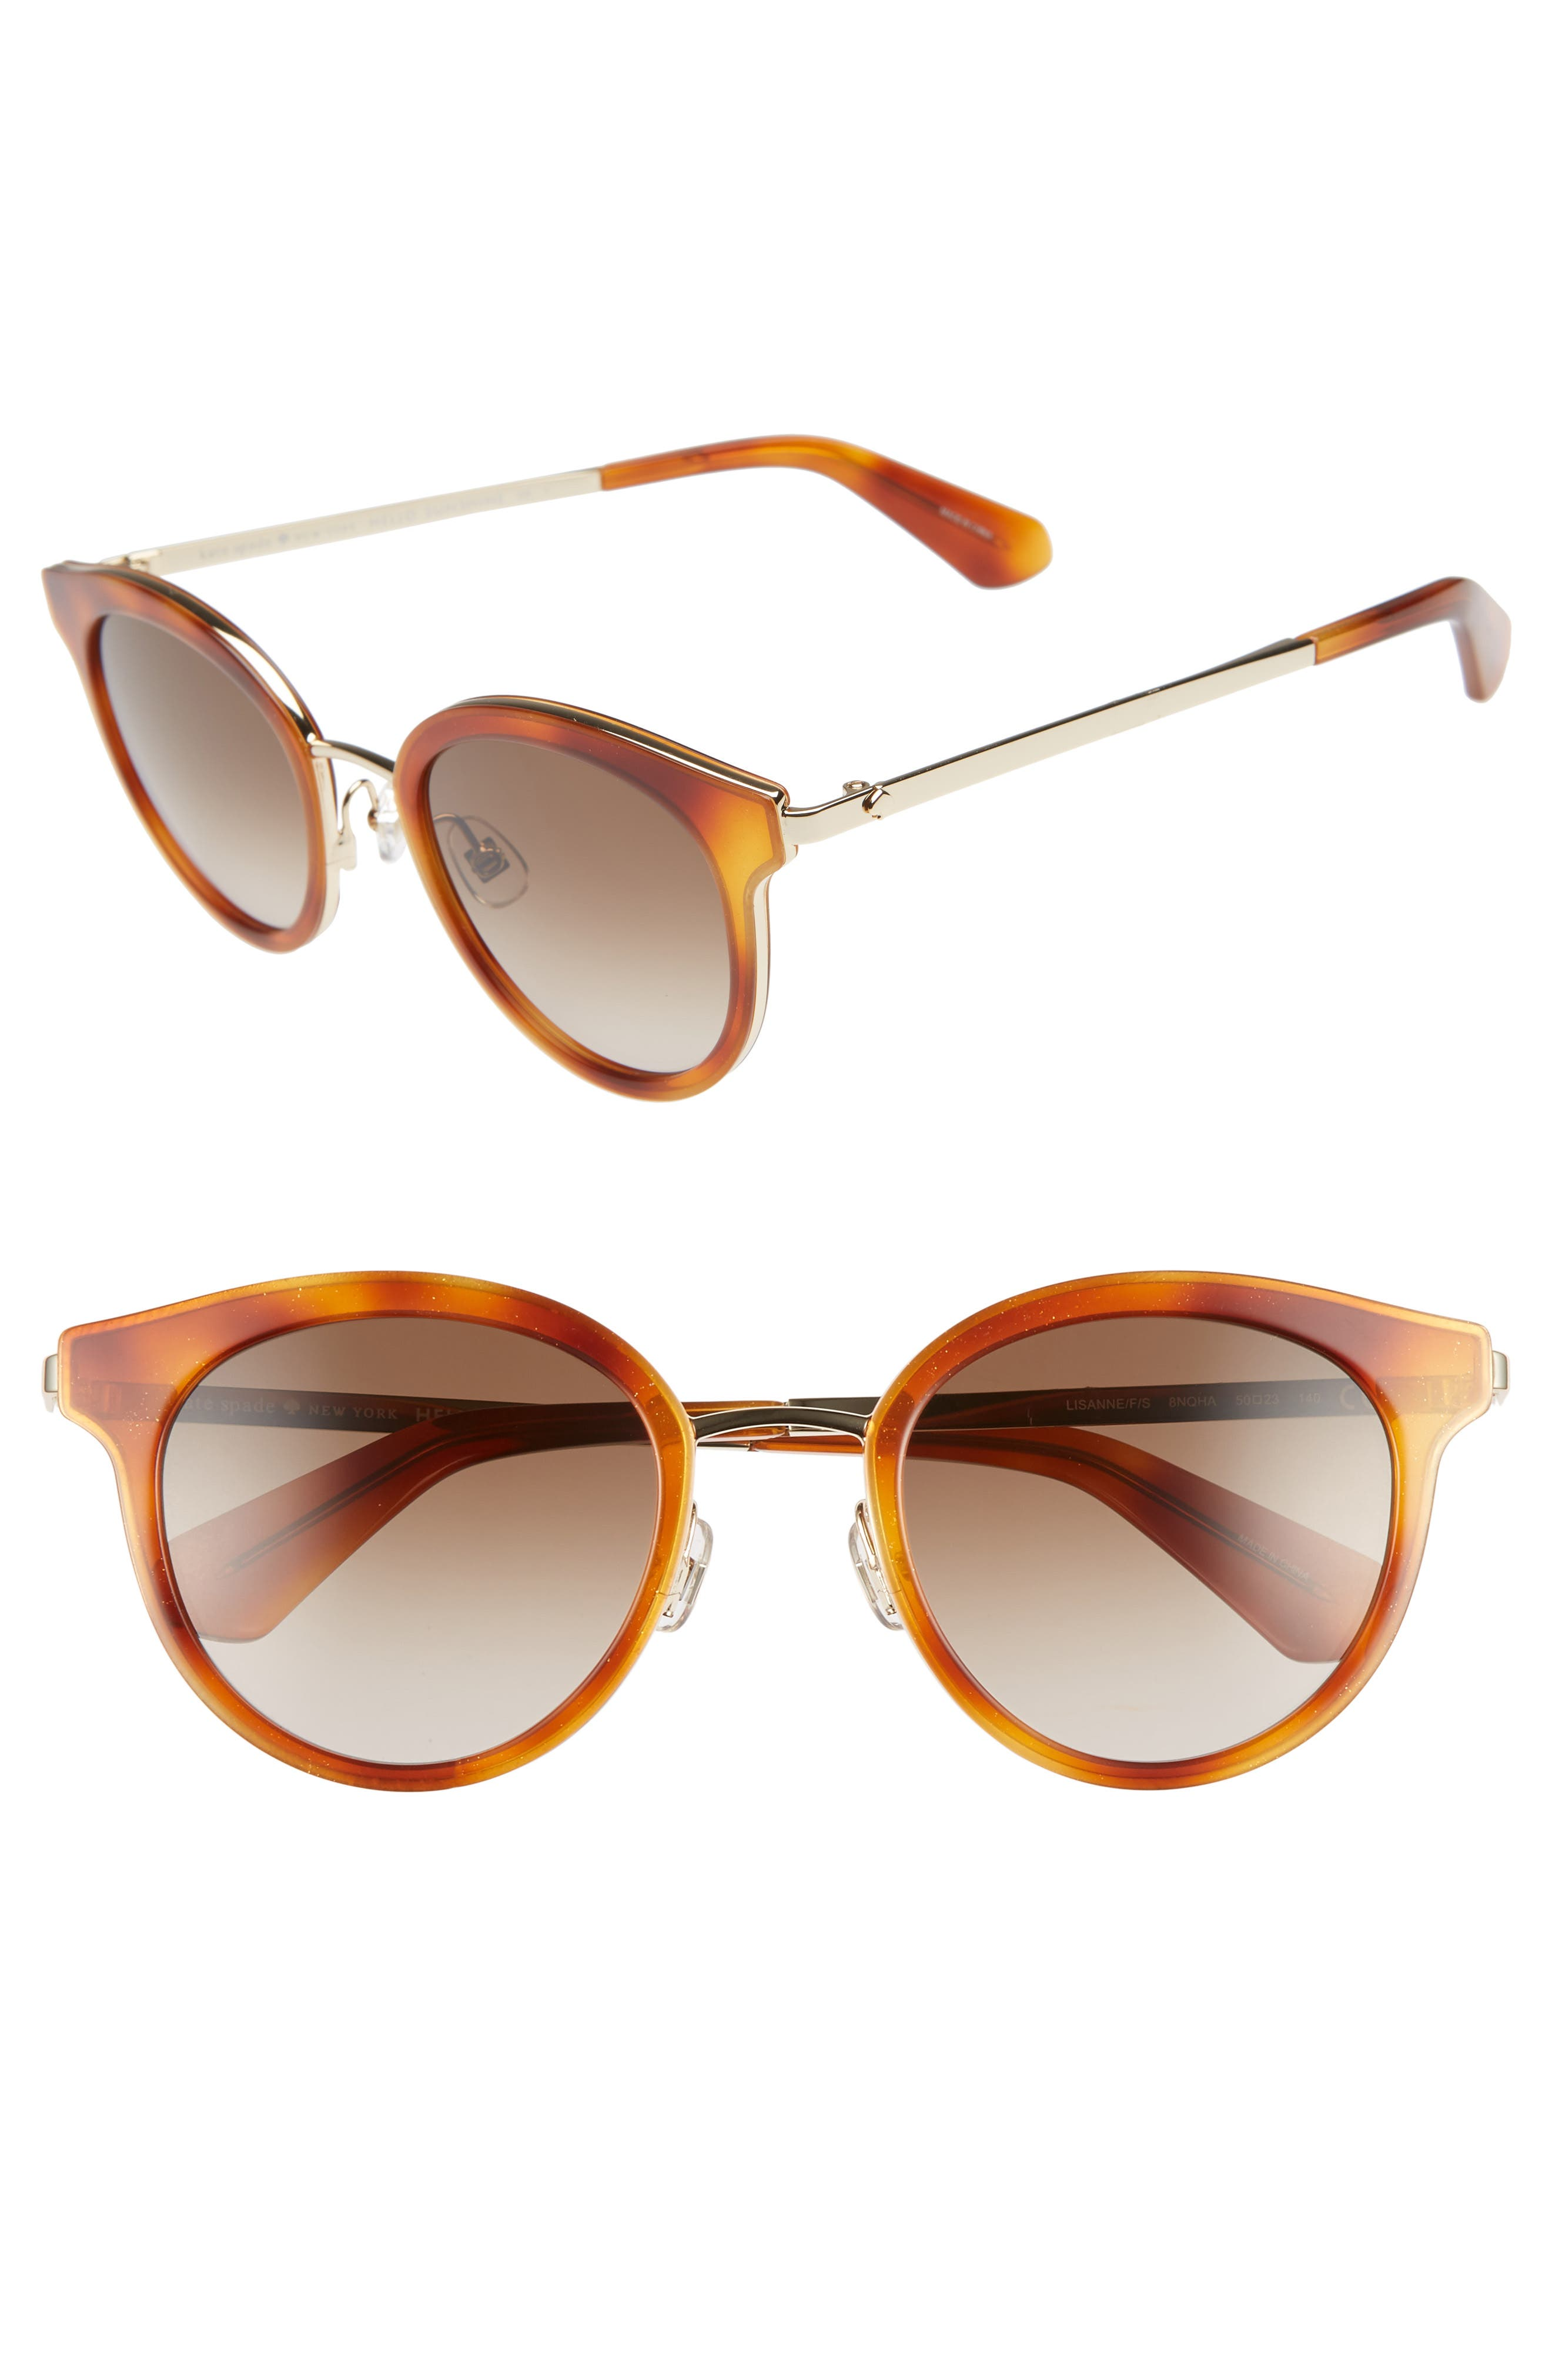 c80a74ead0 Kate Spade New York Round Sunglasses for Women